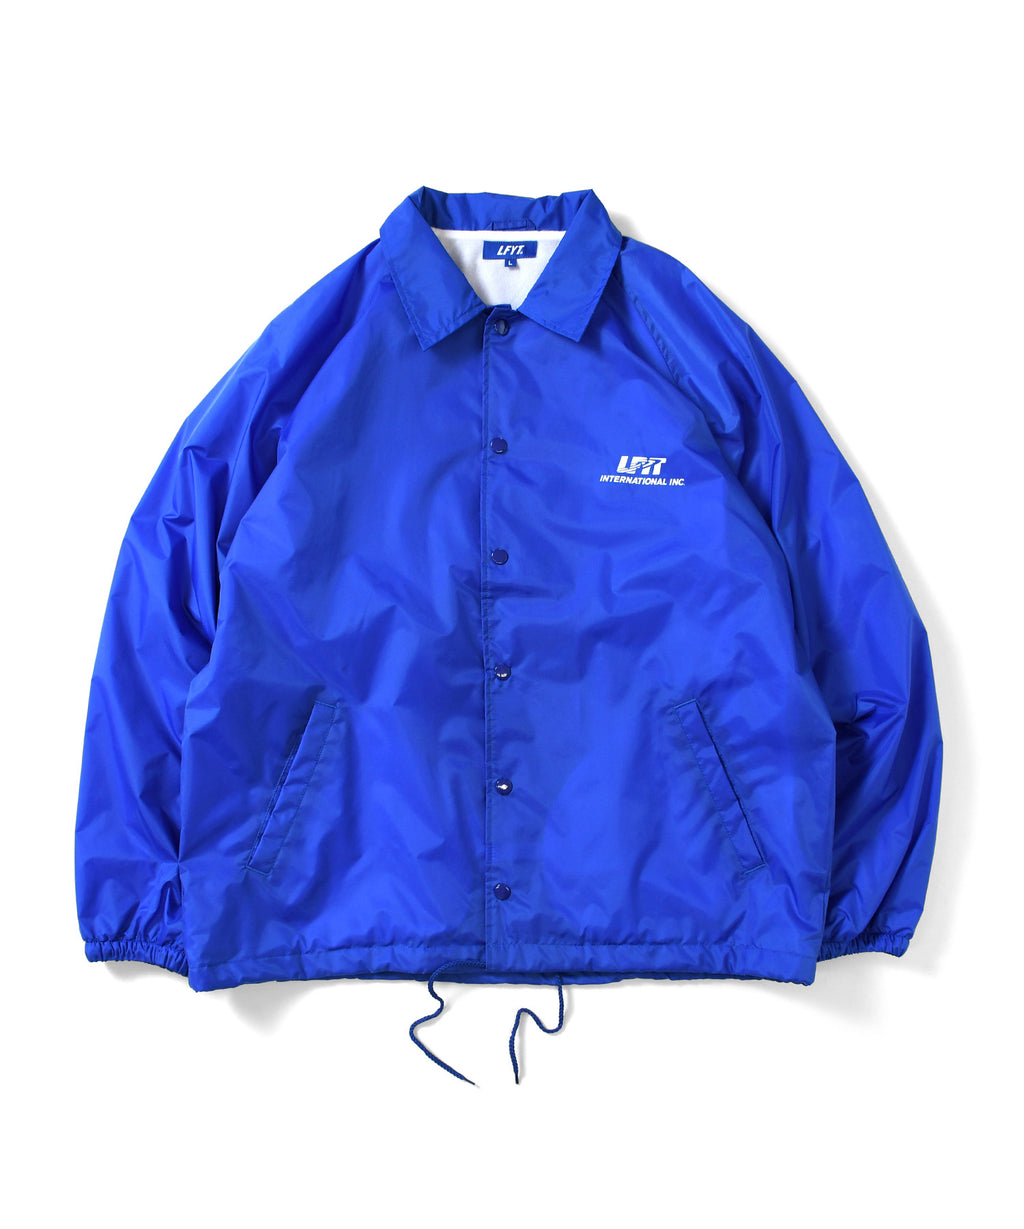 LA201001 LFYT INTERNATIONAL, INC. RAGLAN NYLON COACH JACKET BLUE